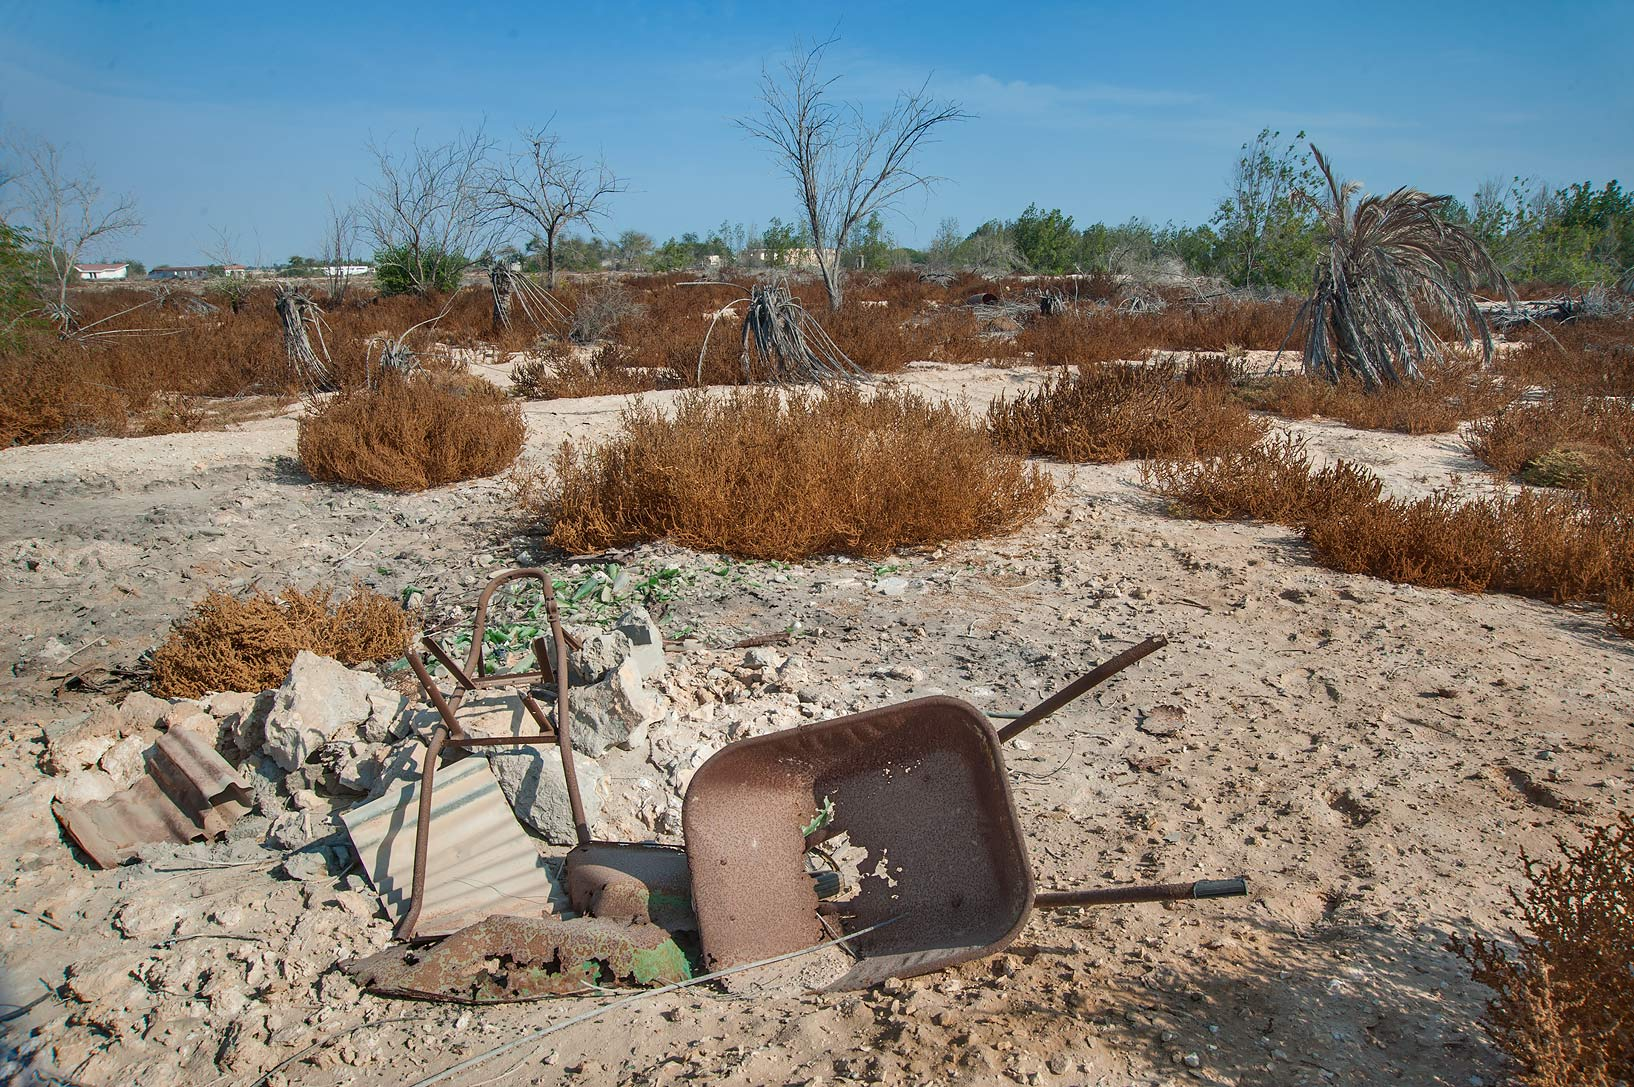 Abandoned gardens in area of Ras Laffan Farms. Northern Qatar